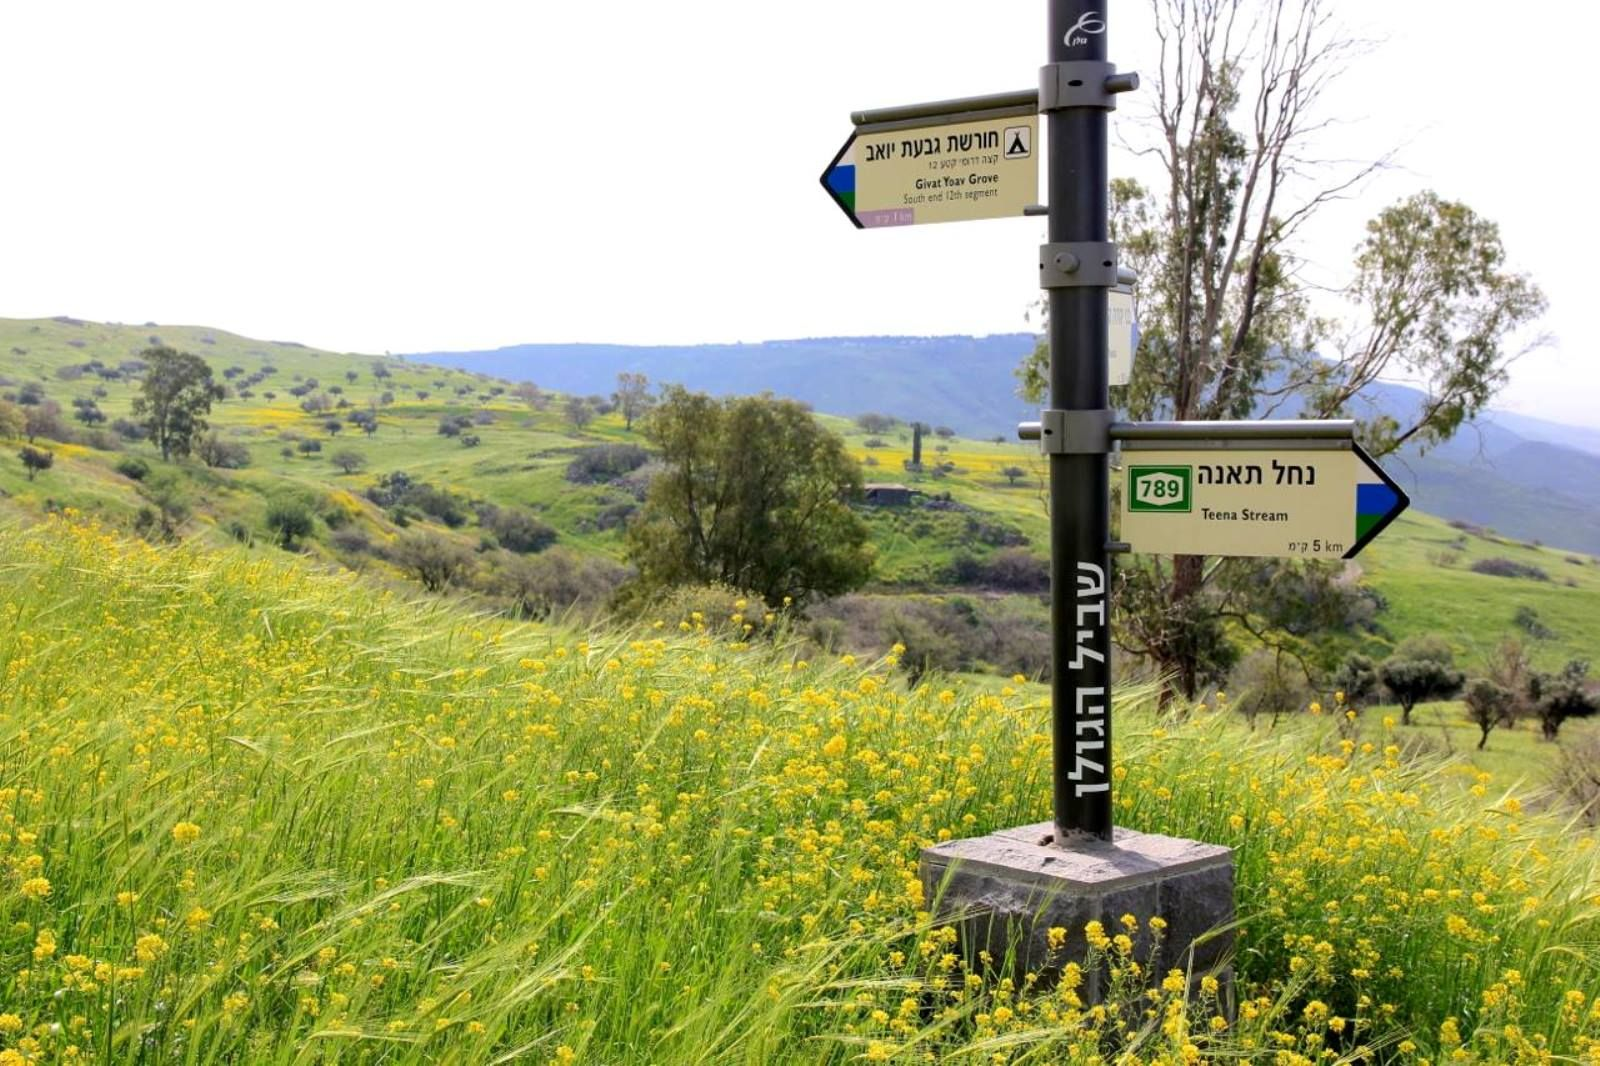 There's more than one way to traverse the Golan Trail. Photo by Israel Eshed